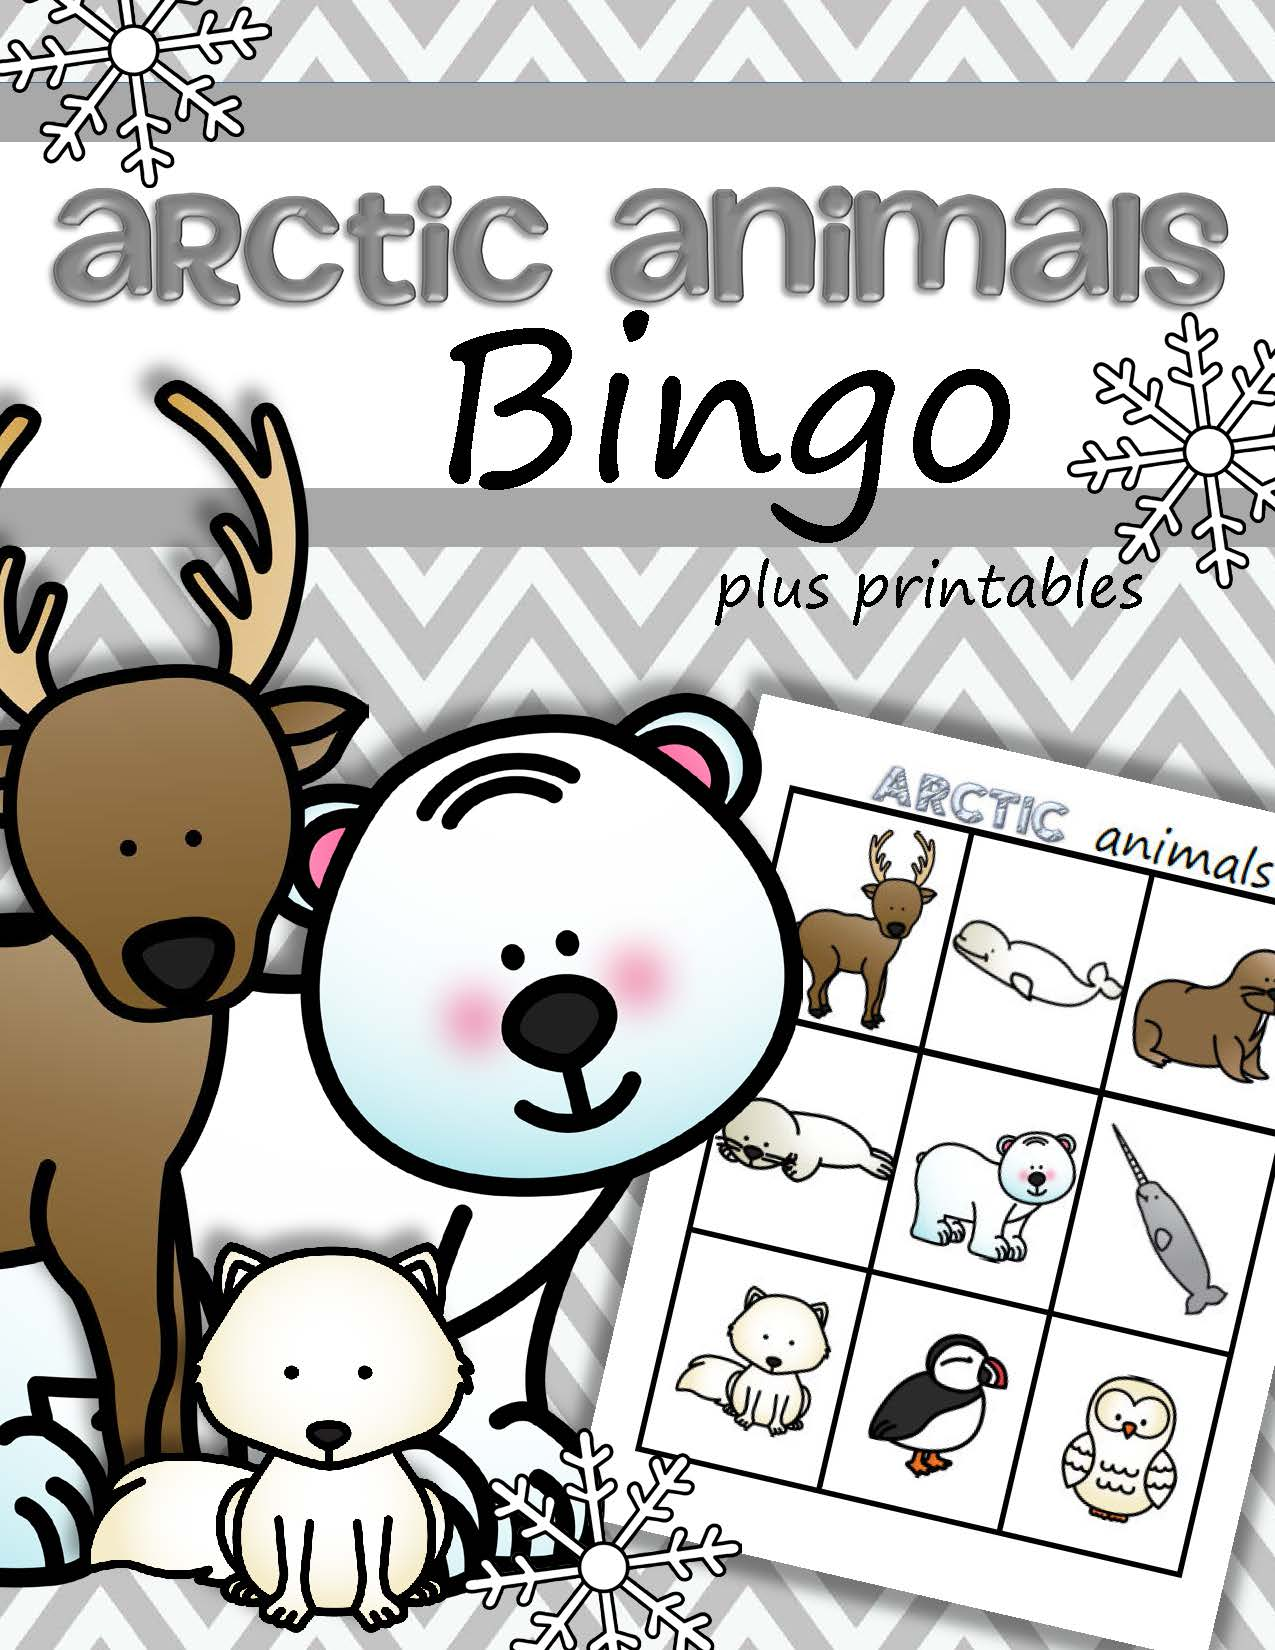 Arctic Animals Bingo Game